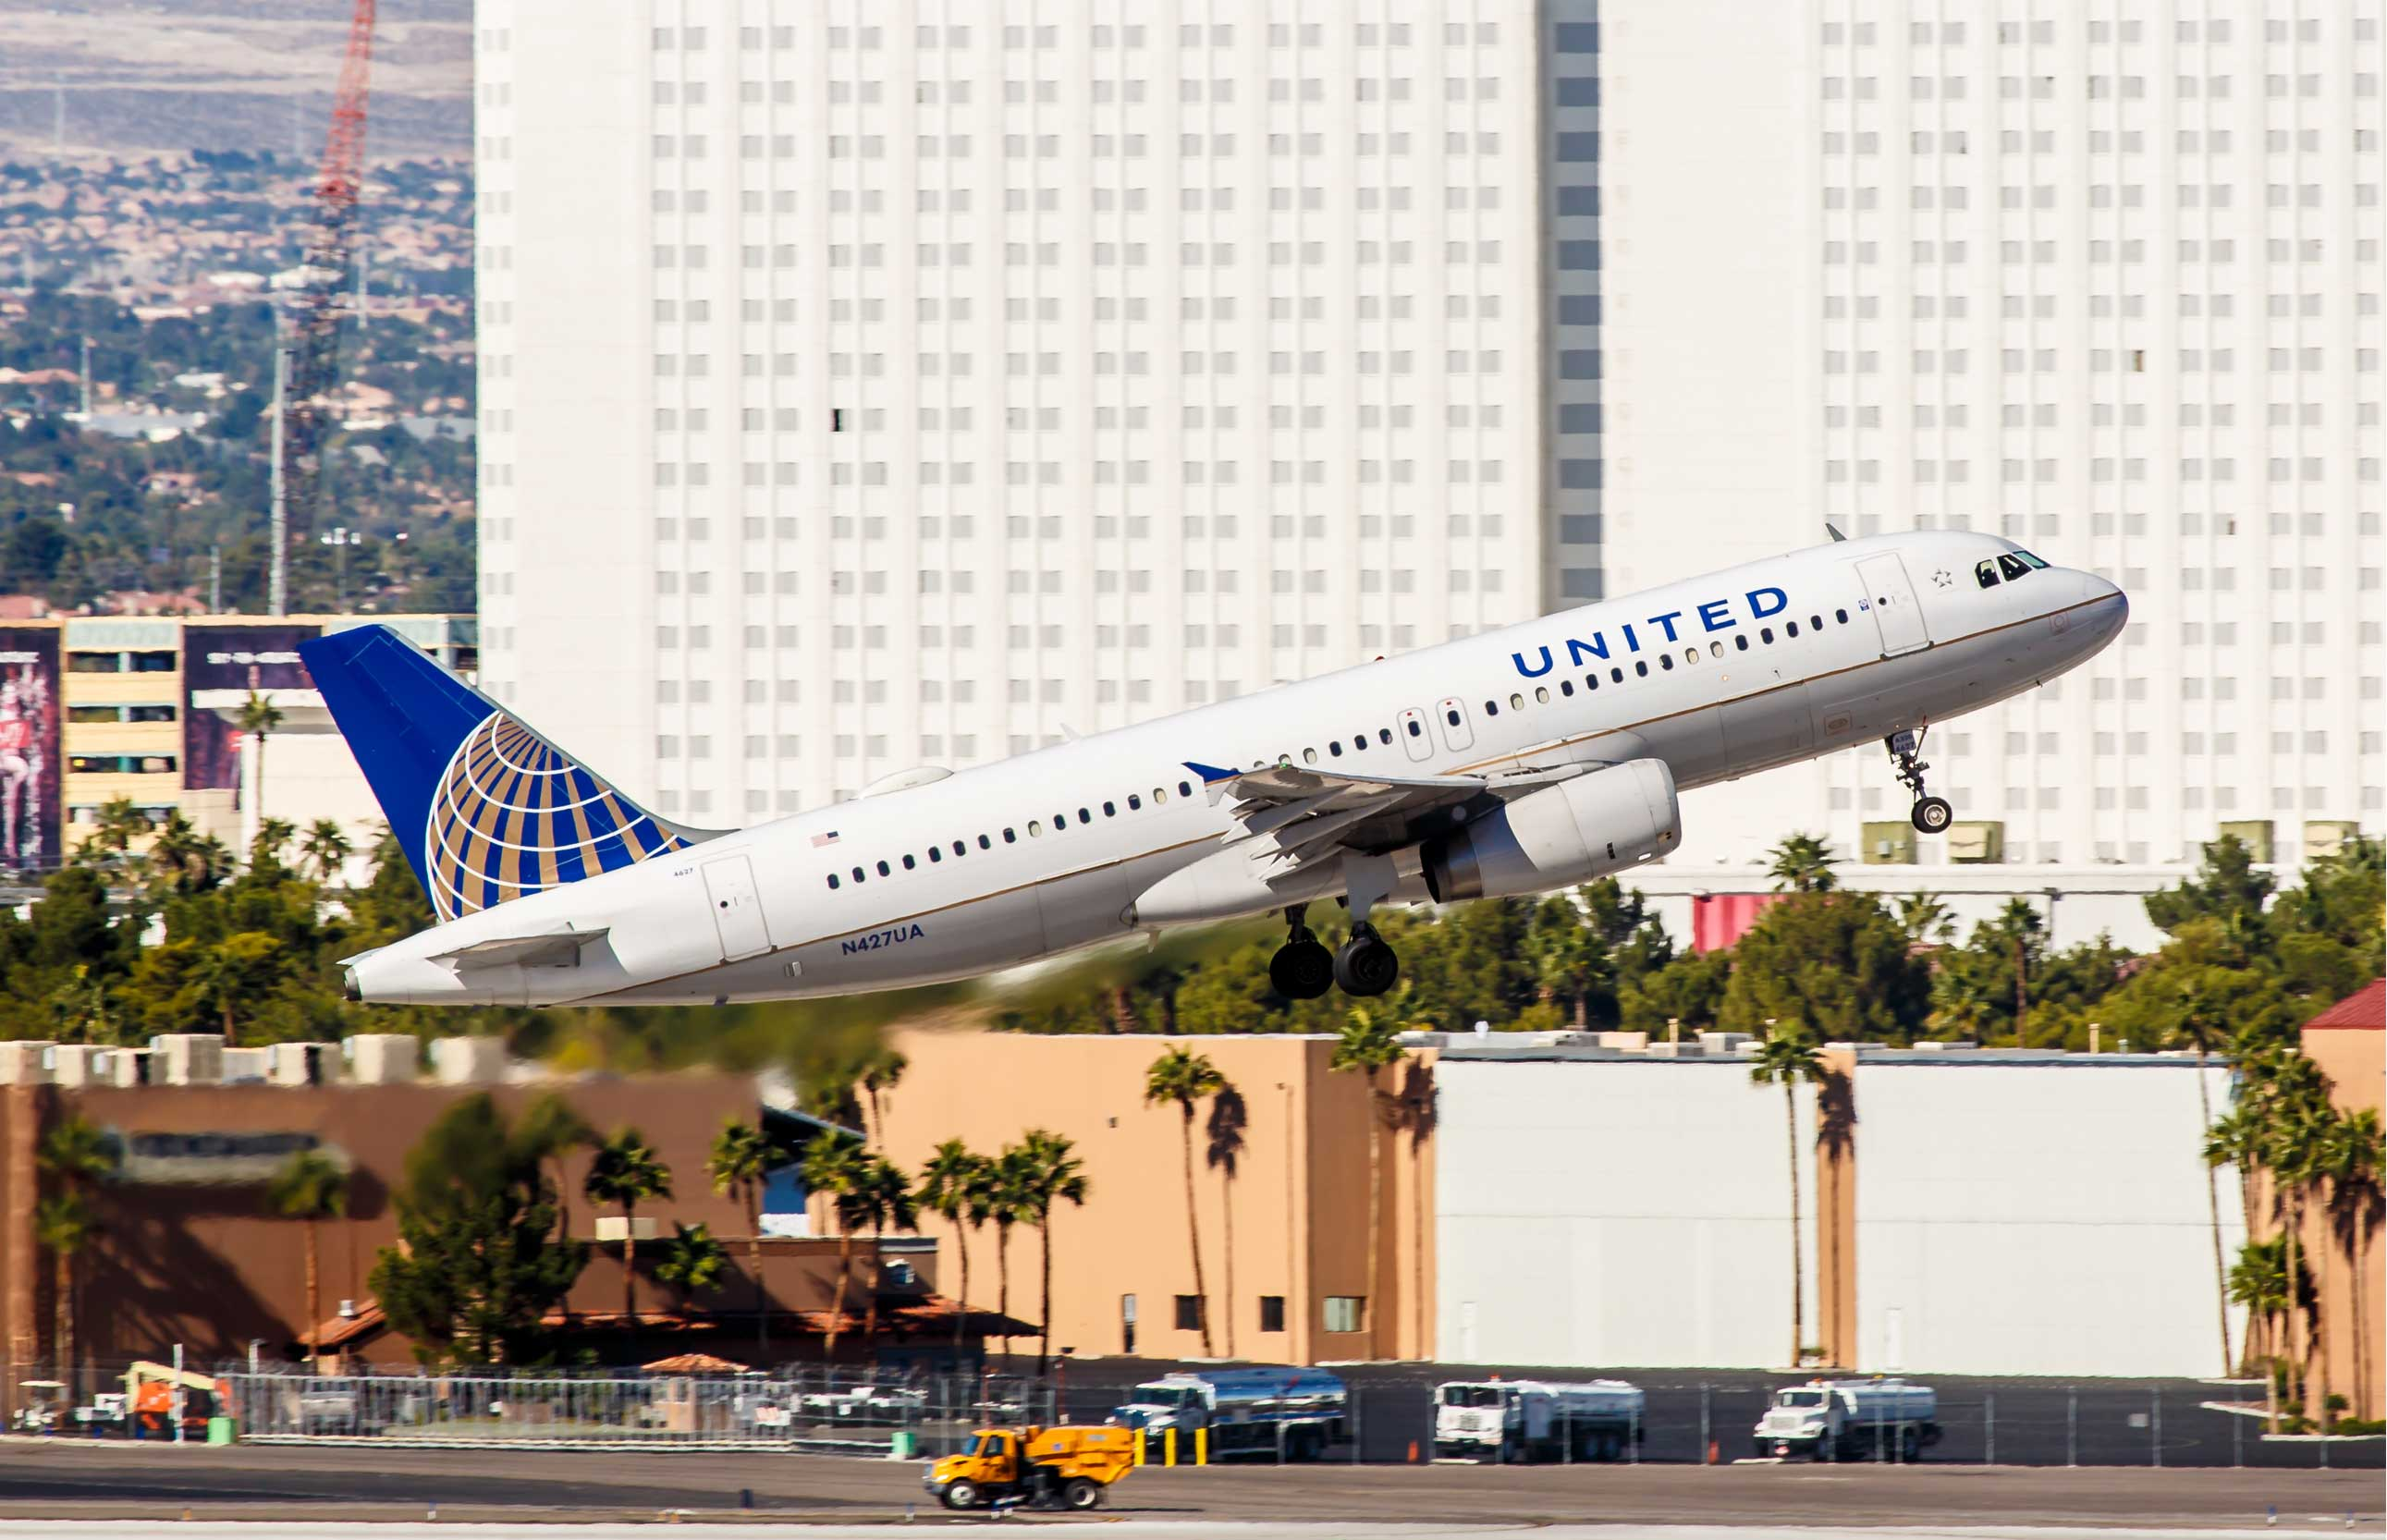 United Has A New Fee Policy For Changing Awards Flights